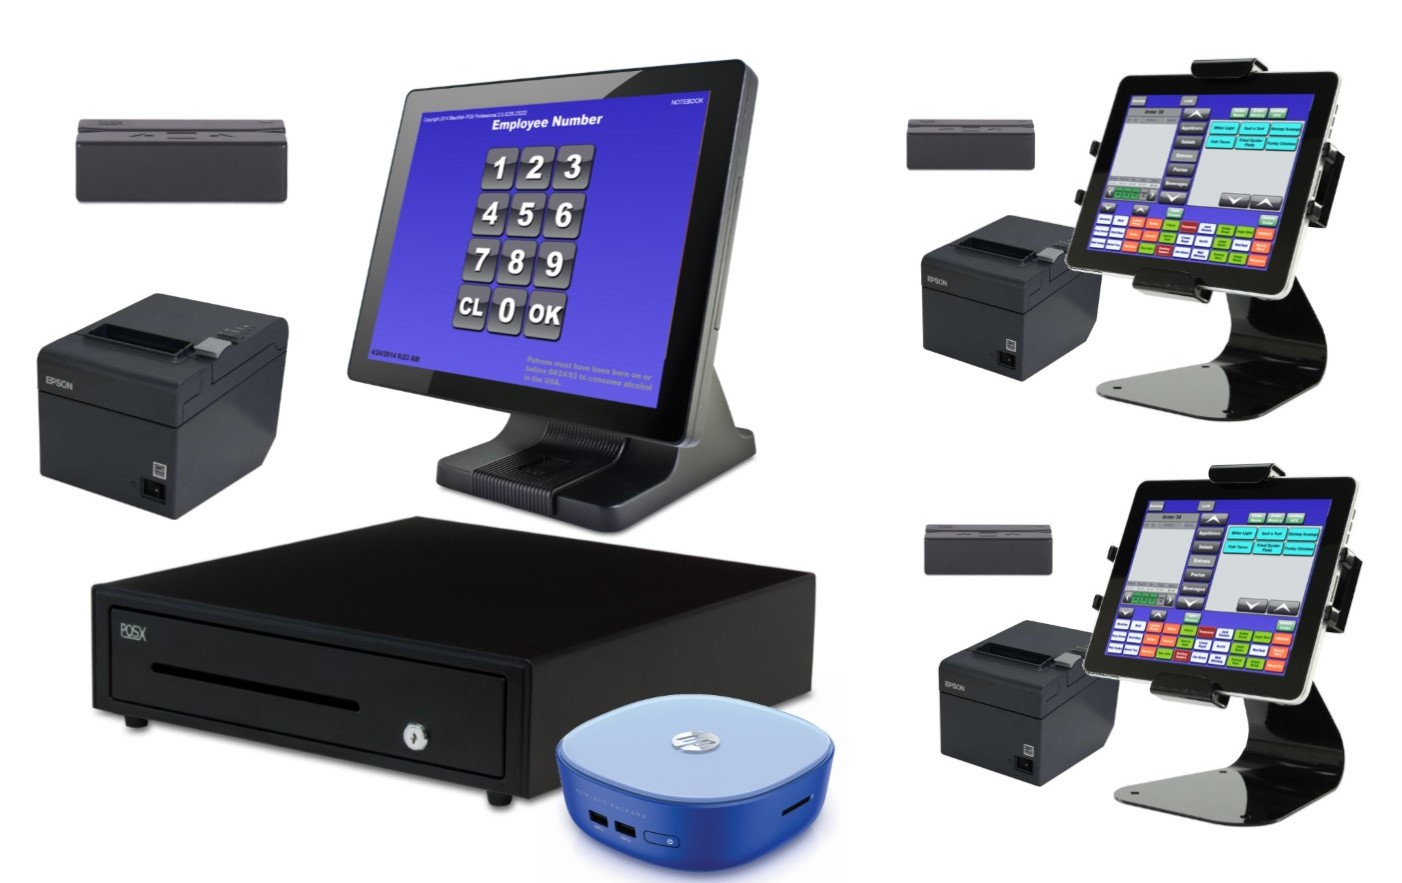 3 Station Blackfish POS System With Tablets